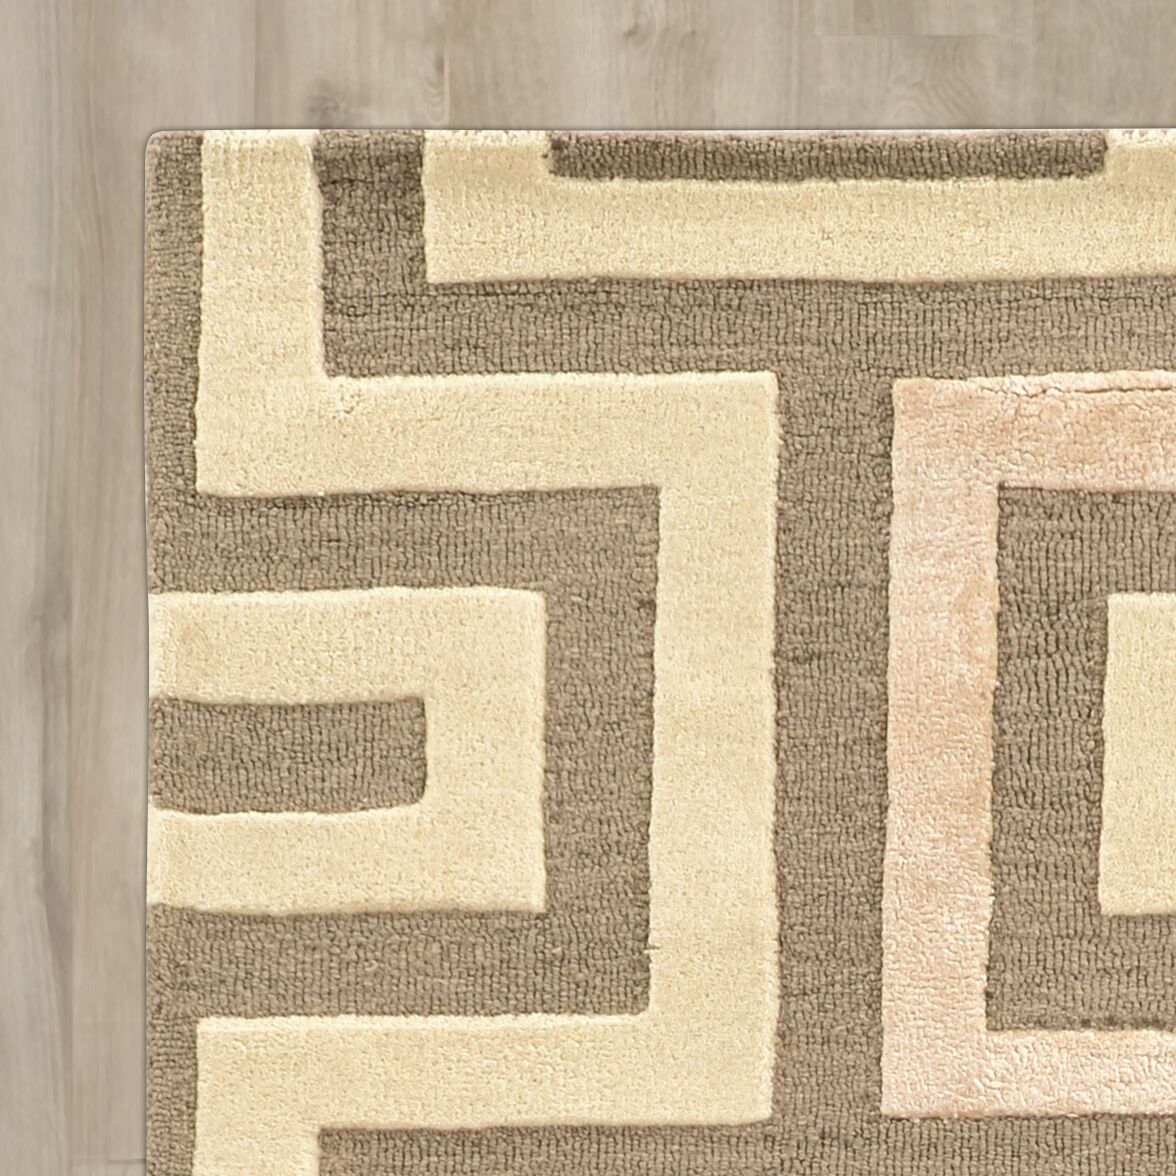 Leone Hand-Tufted Beige/Gray Area Rug Rug Size: Rectangle 8' x 11'